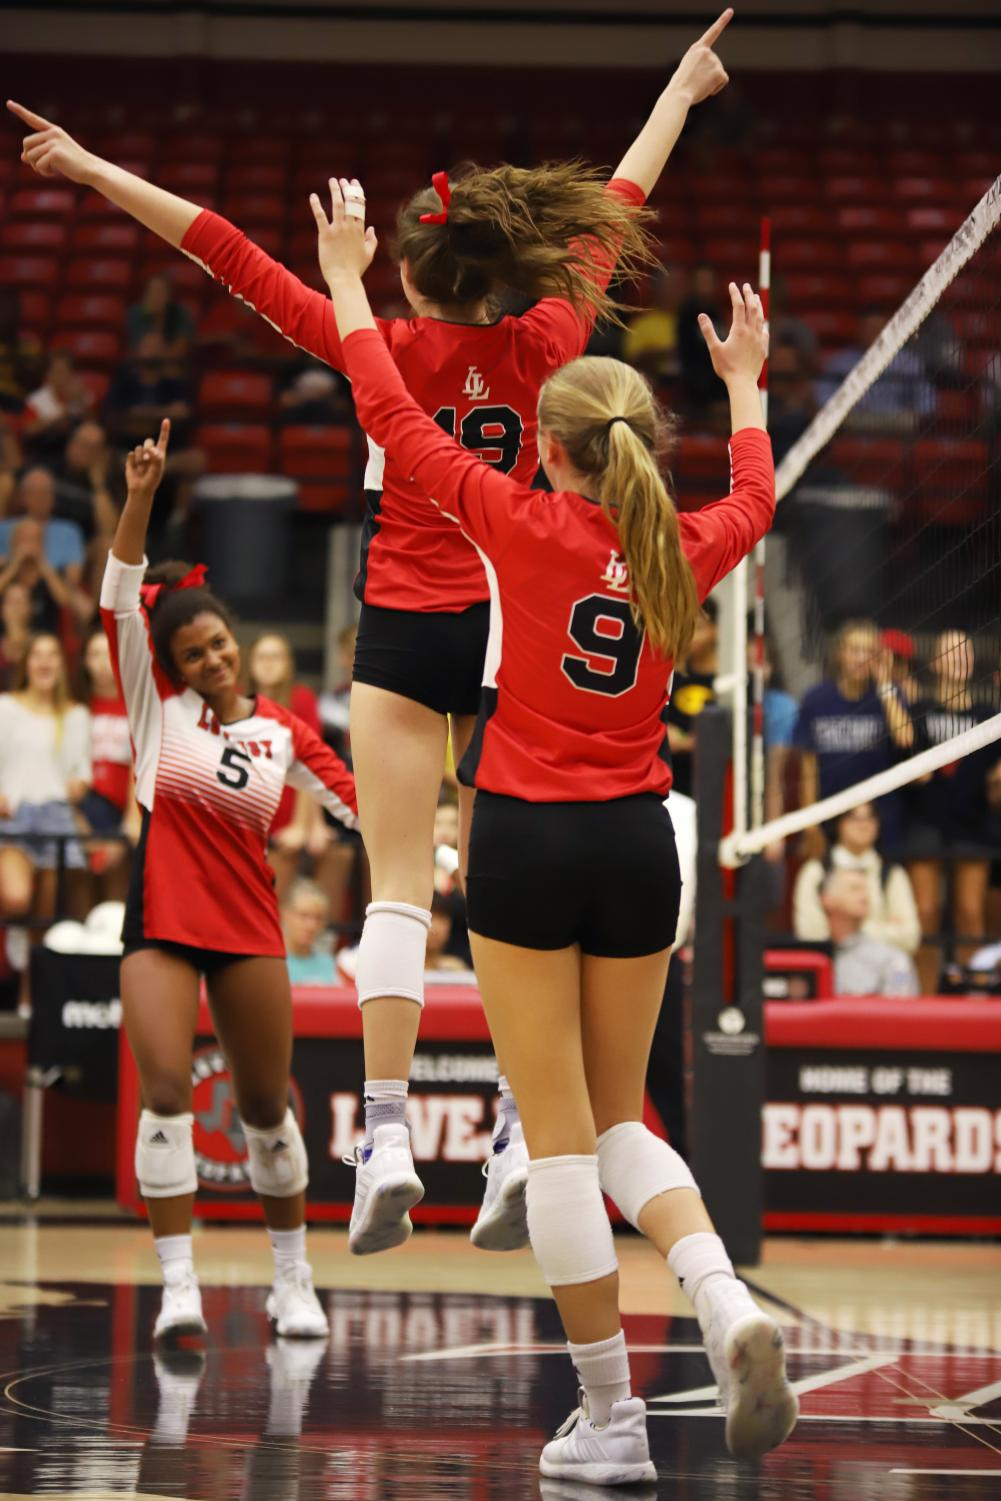 Junior+Lexie+Collins+and+sophomore+Averi+Carlson+celebrate+during+the+first+set+of+the+game.+The+Leopards+won+the+first+set+25-18.